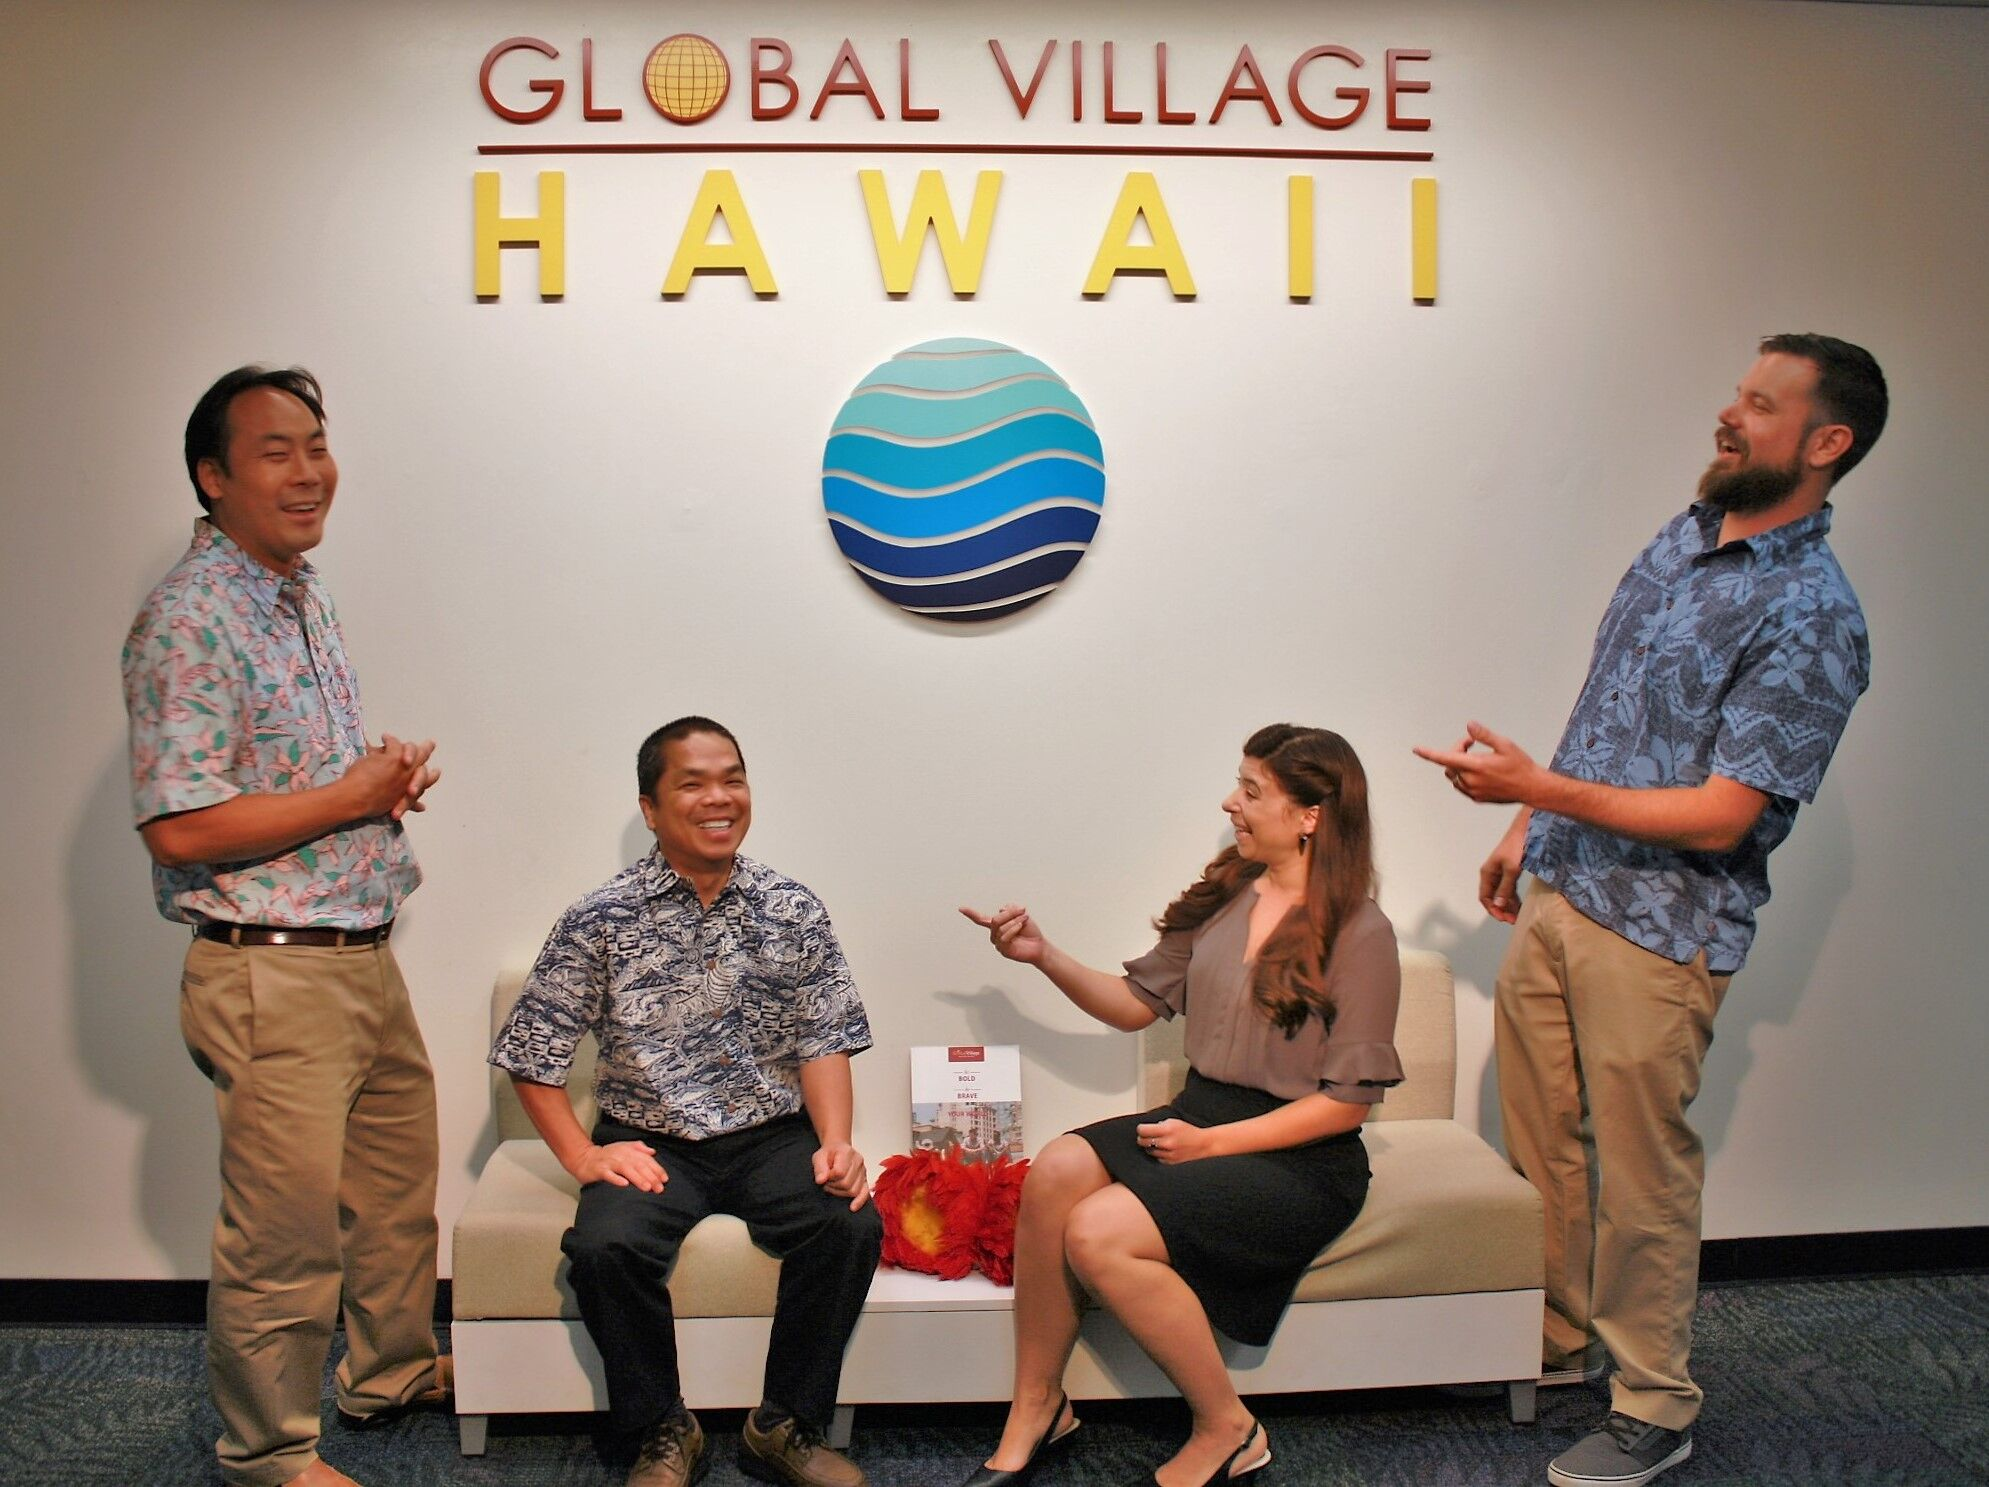 GV Honolulu, Hawaii